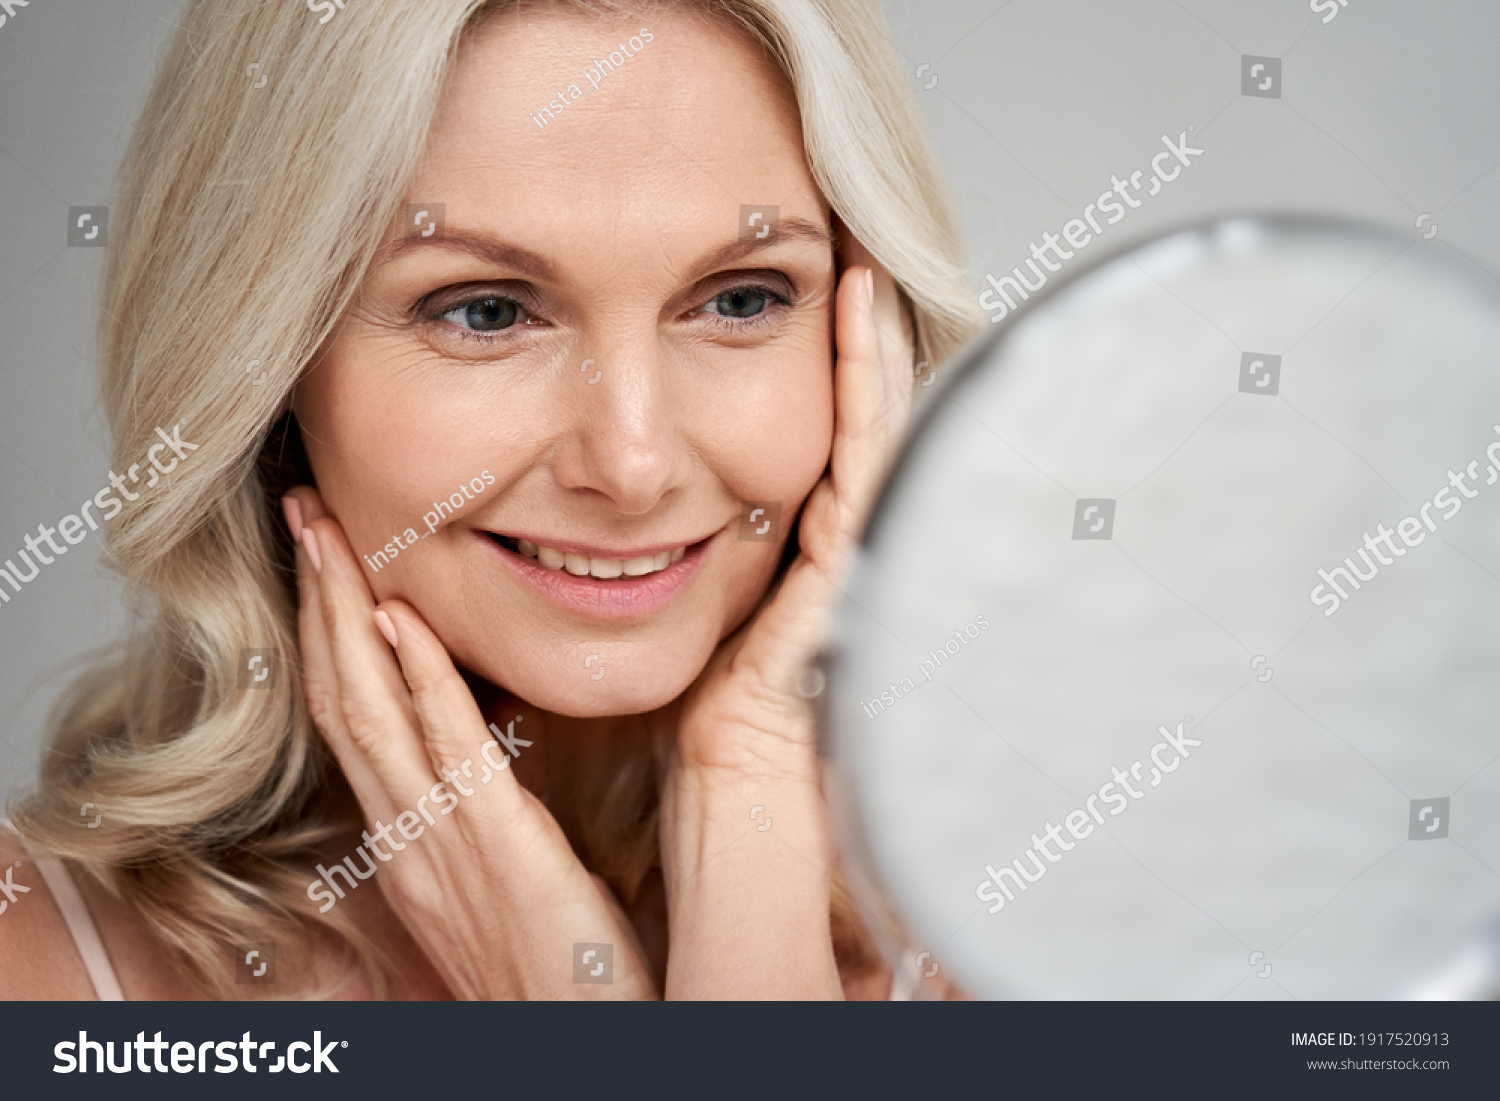 Happy 50s middle aged woman model touching face skin looking in mirror. Smiling mature older lady pampering, enjoying healthy skin care, aging beauty, skincare treatment cosmetic products concept. #1917520913